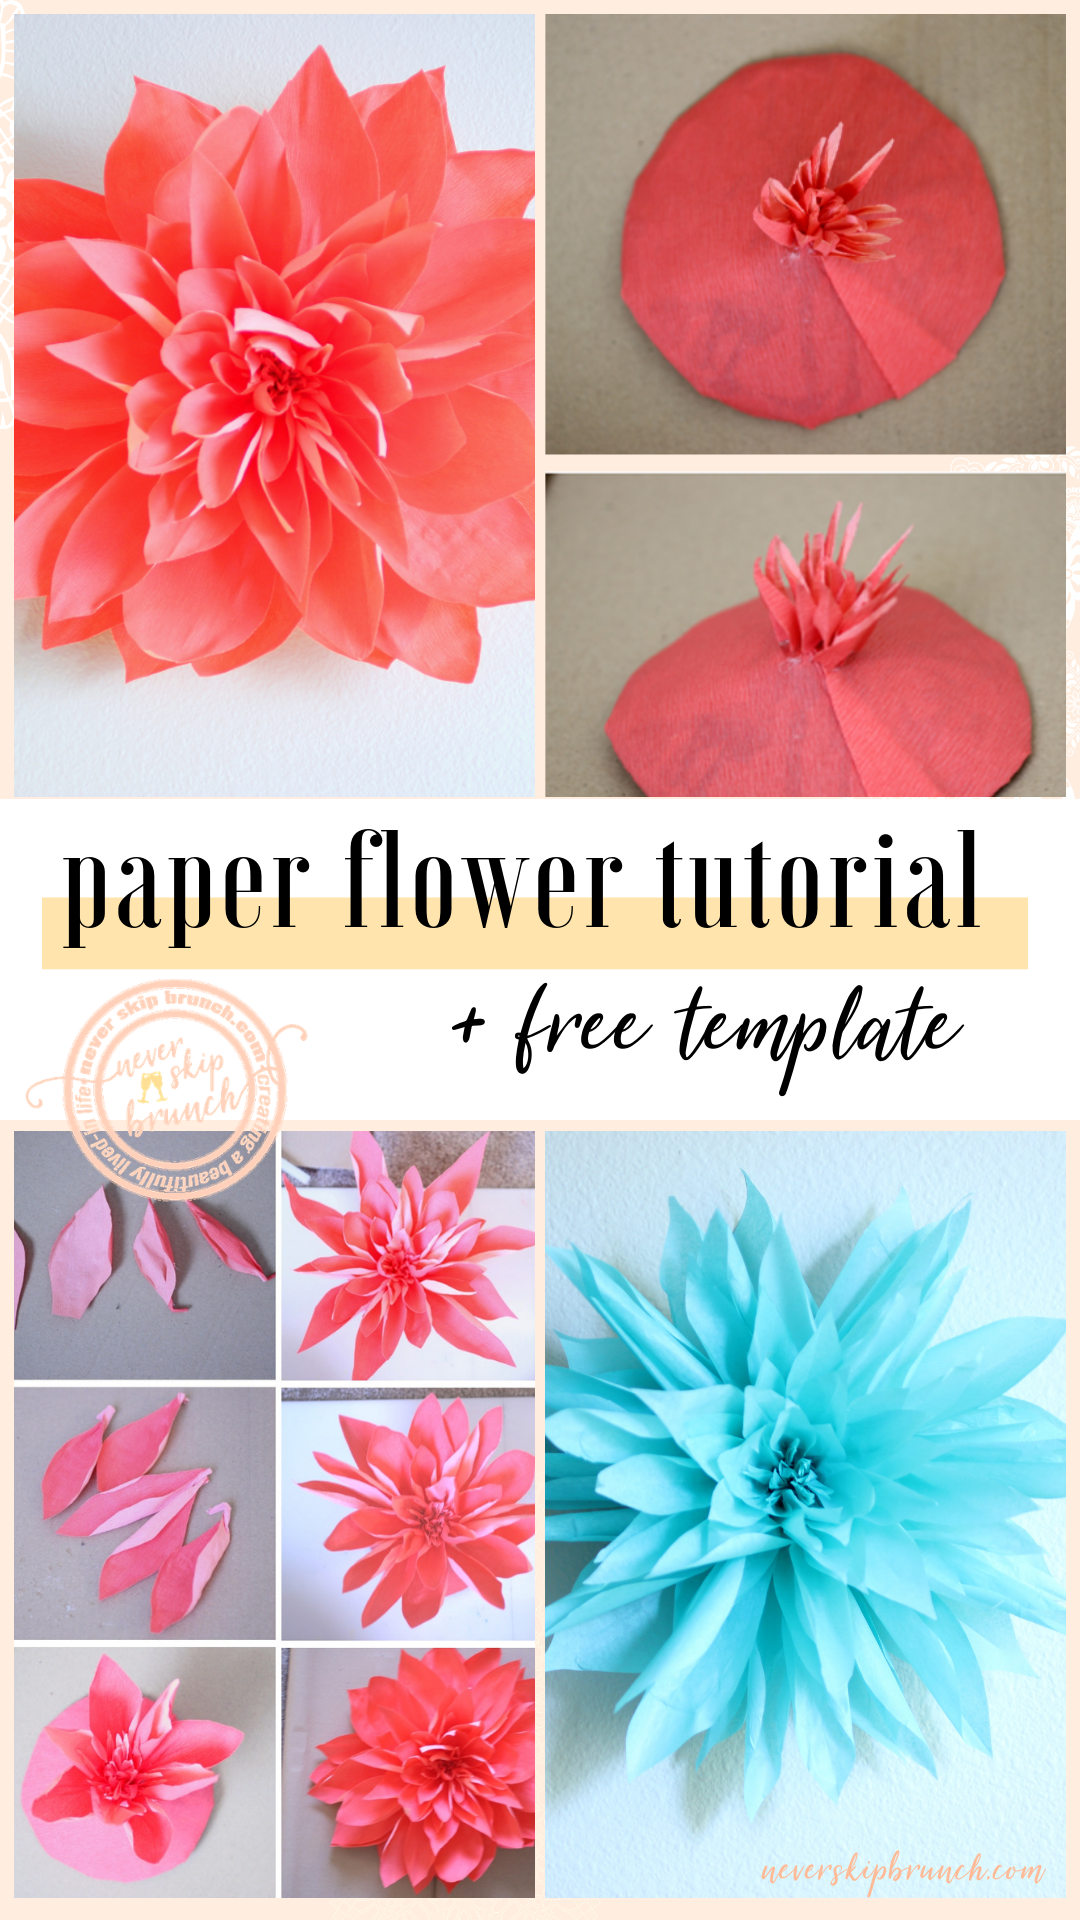 ADORABLE!!! giant paper flower tutorial wall art | paper flowers diy | paper flower diy | wall decor paper flower | diy paper flower for wall | paper flowers template | paper flowers free printable | Never Skip Brunch by Cara Newhart | #decor #diy #paperflower #neverskipbrunch